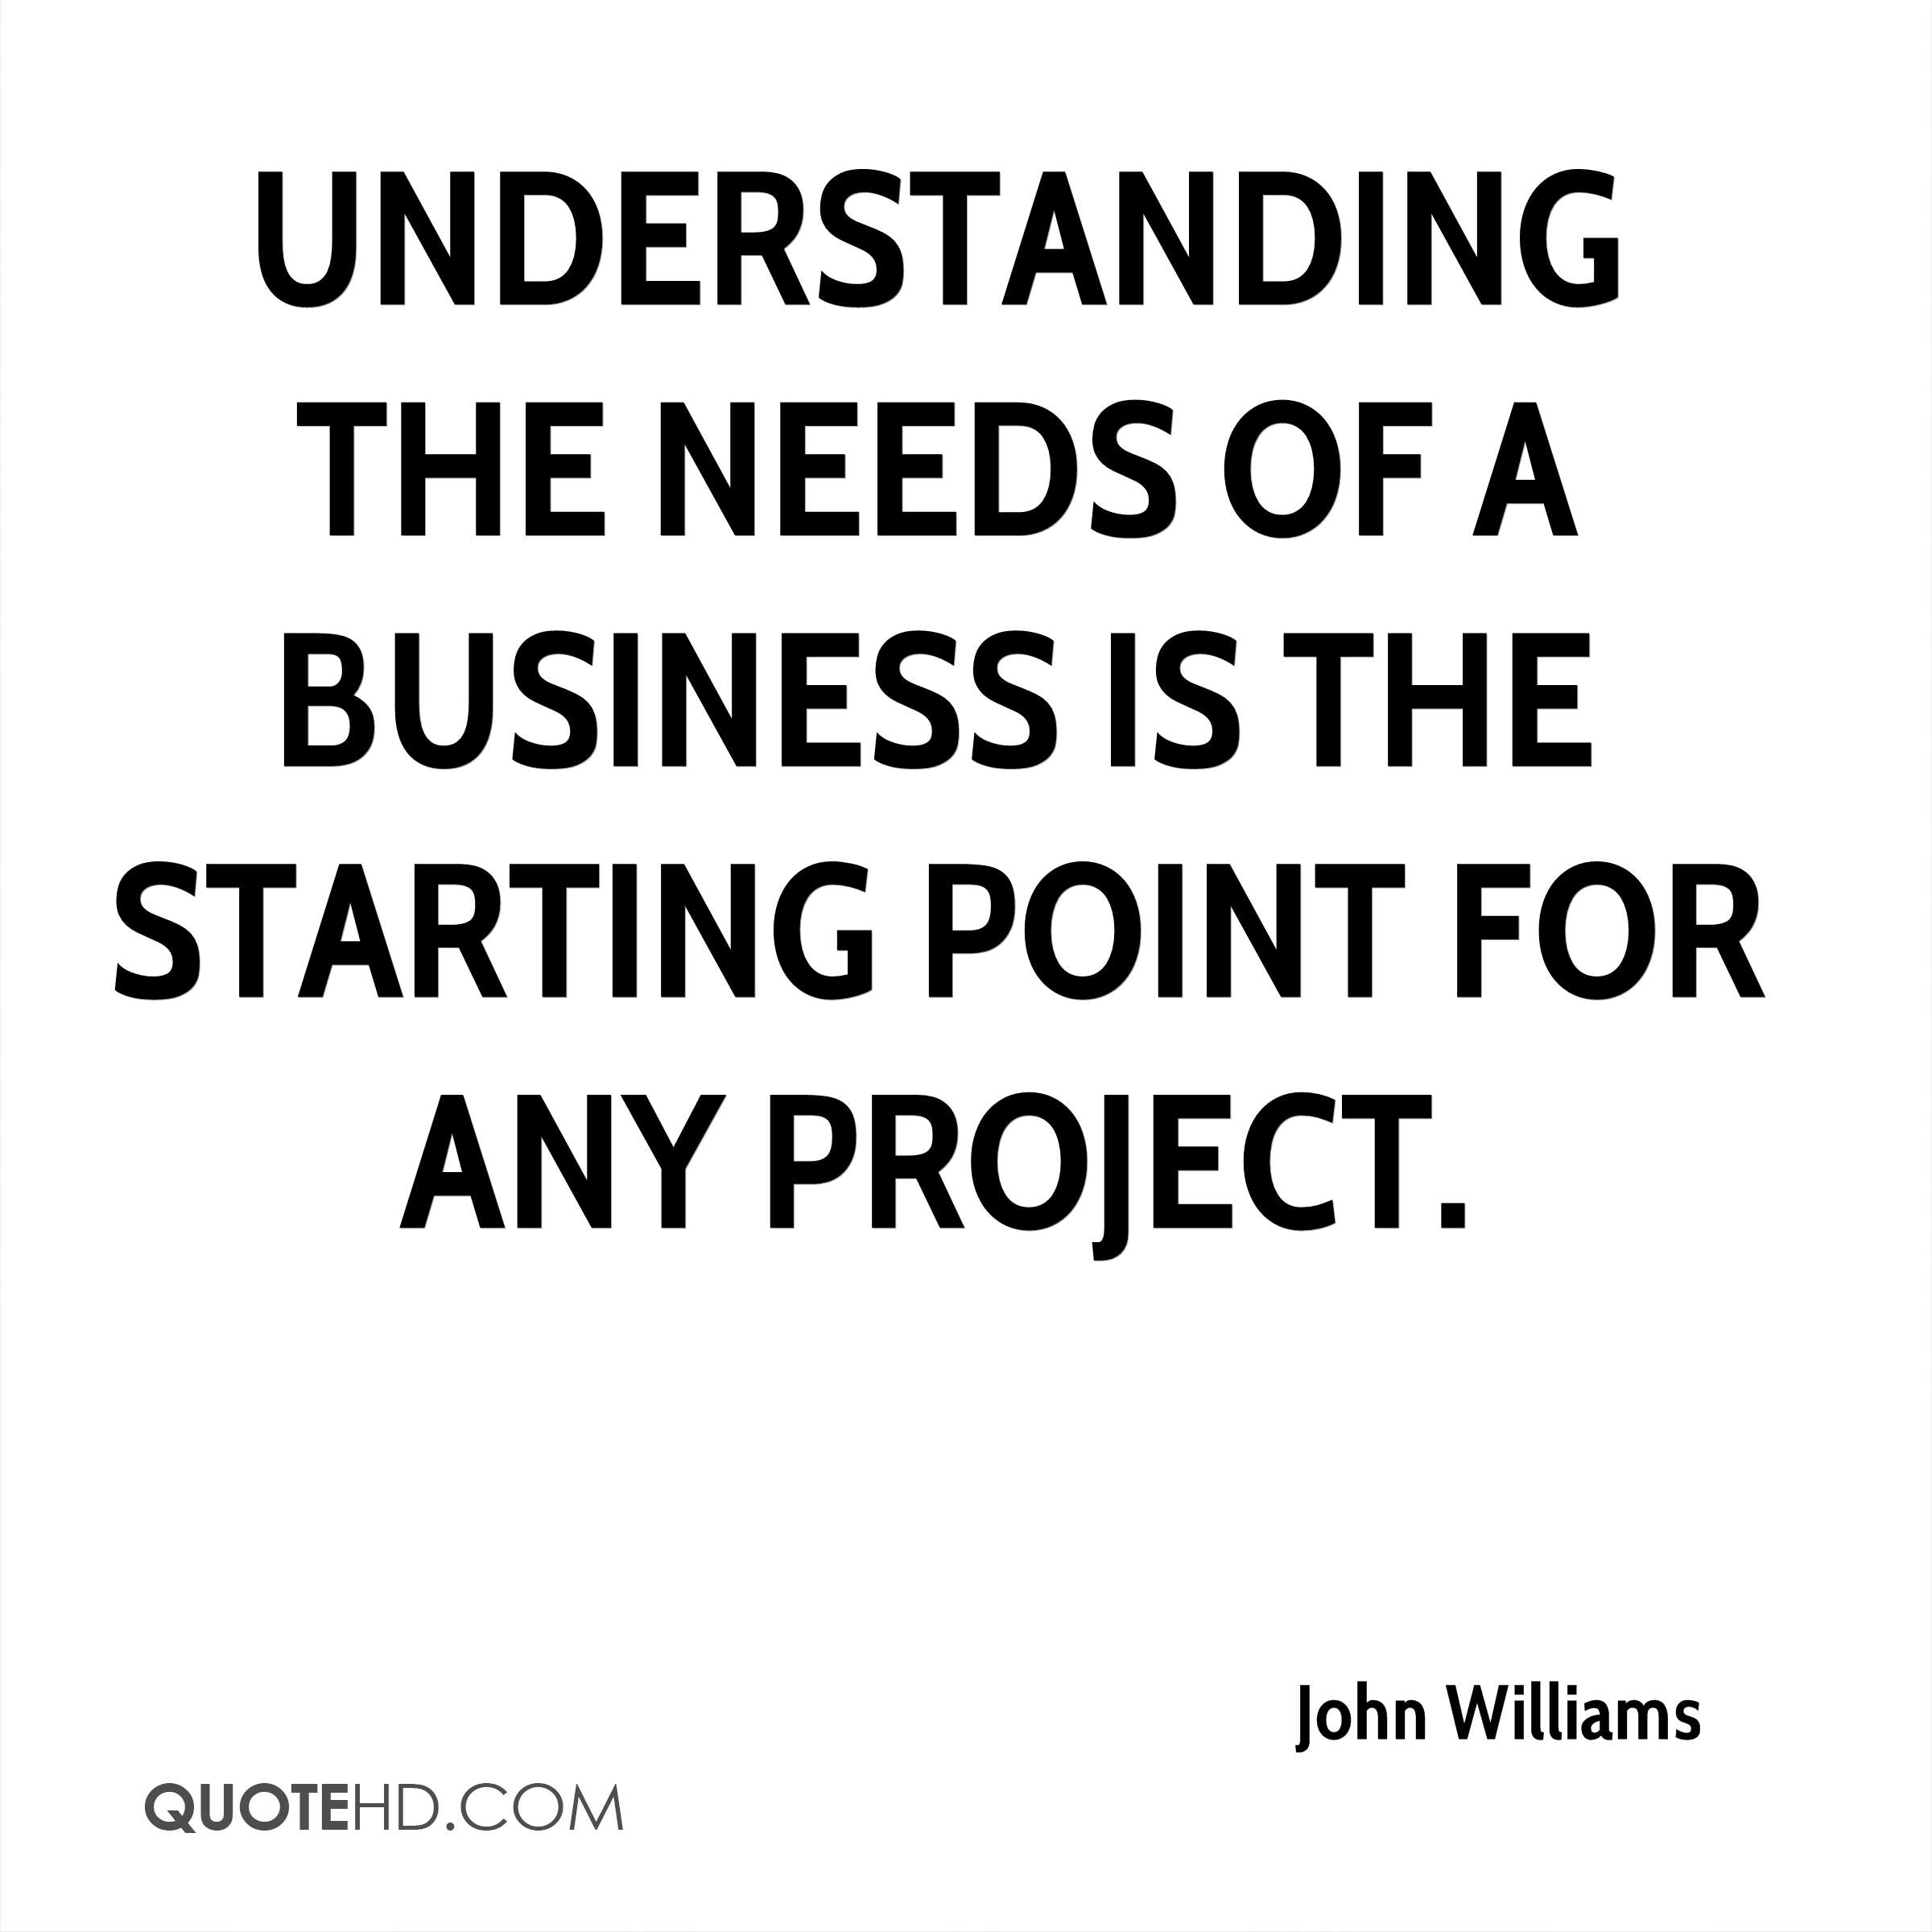 Famous Quotes For Business: John Williams Famous Quotes. QuotesGram